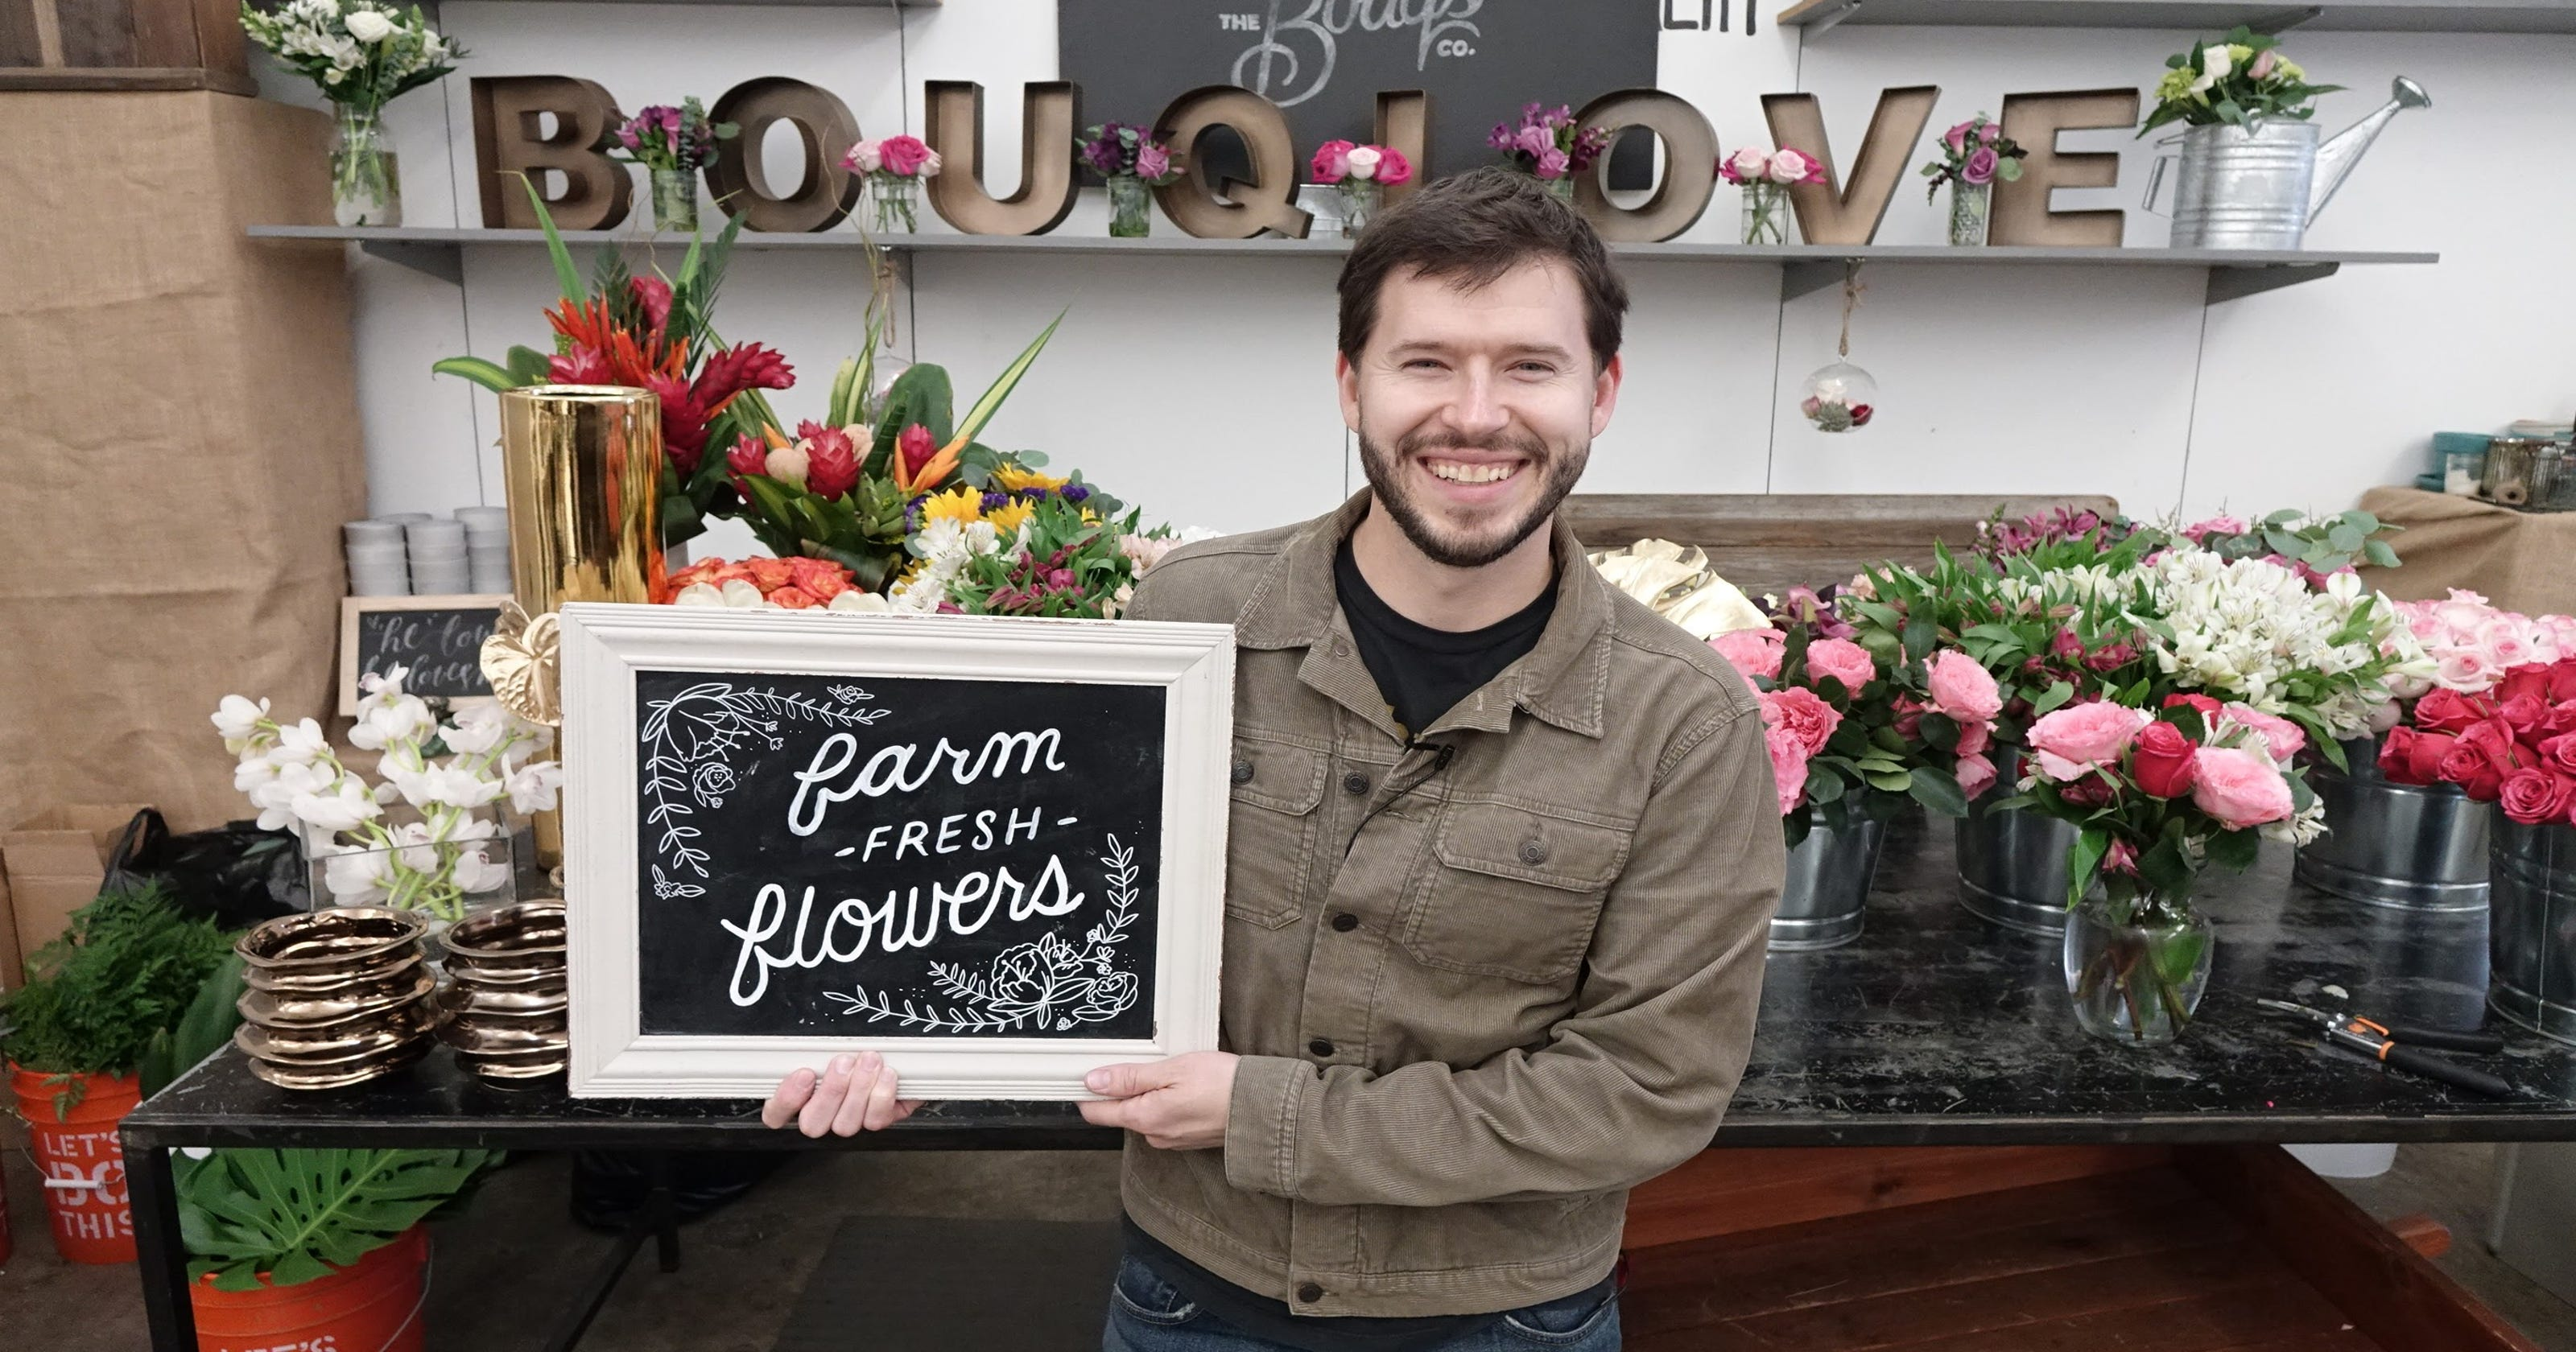 Floral Start Ups Aim At Younger Generation With Flash Sales Organic